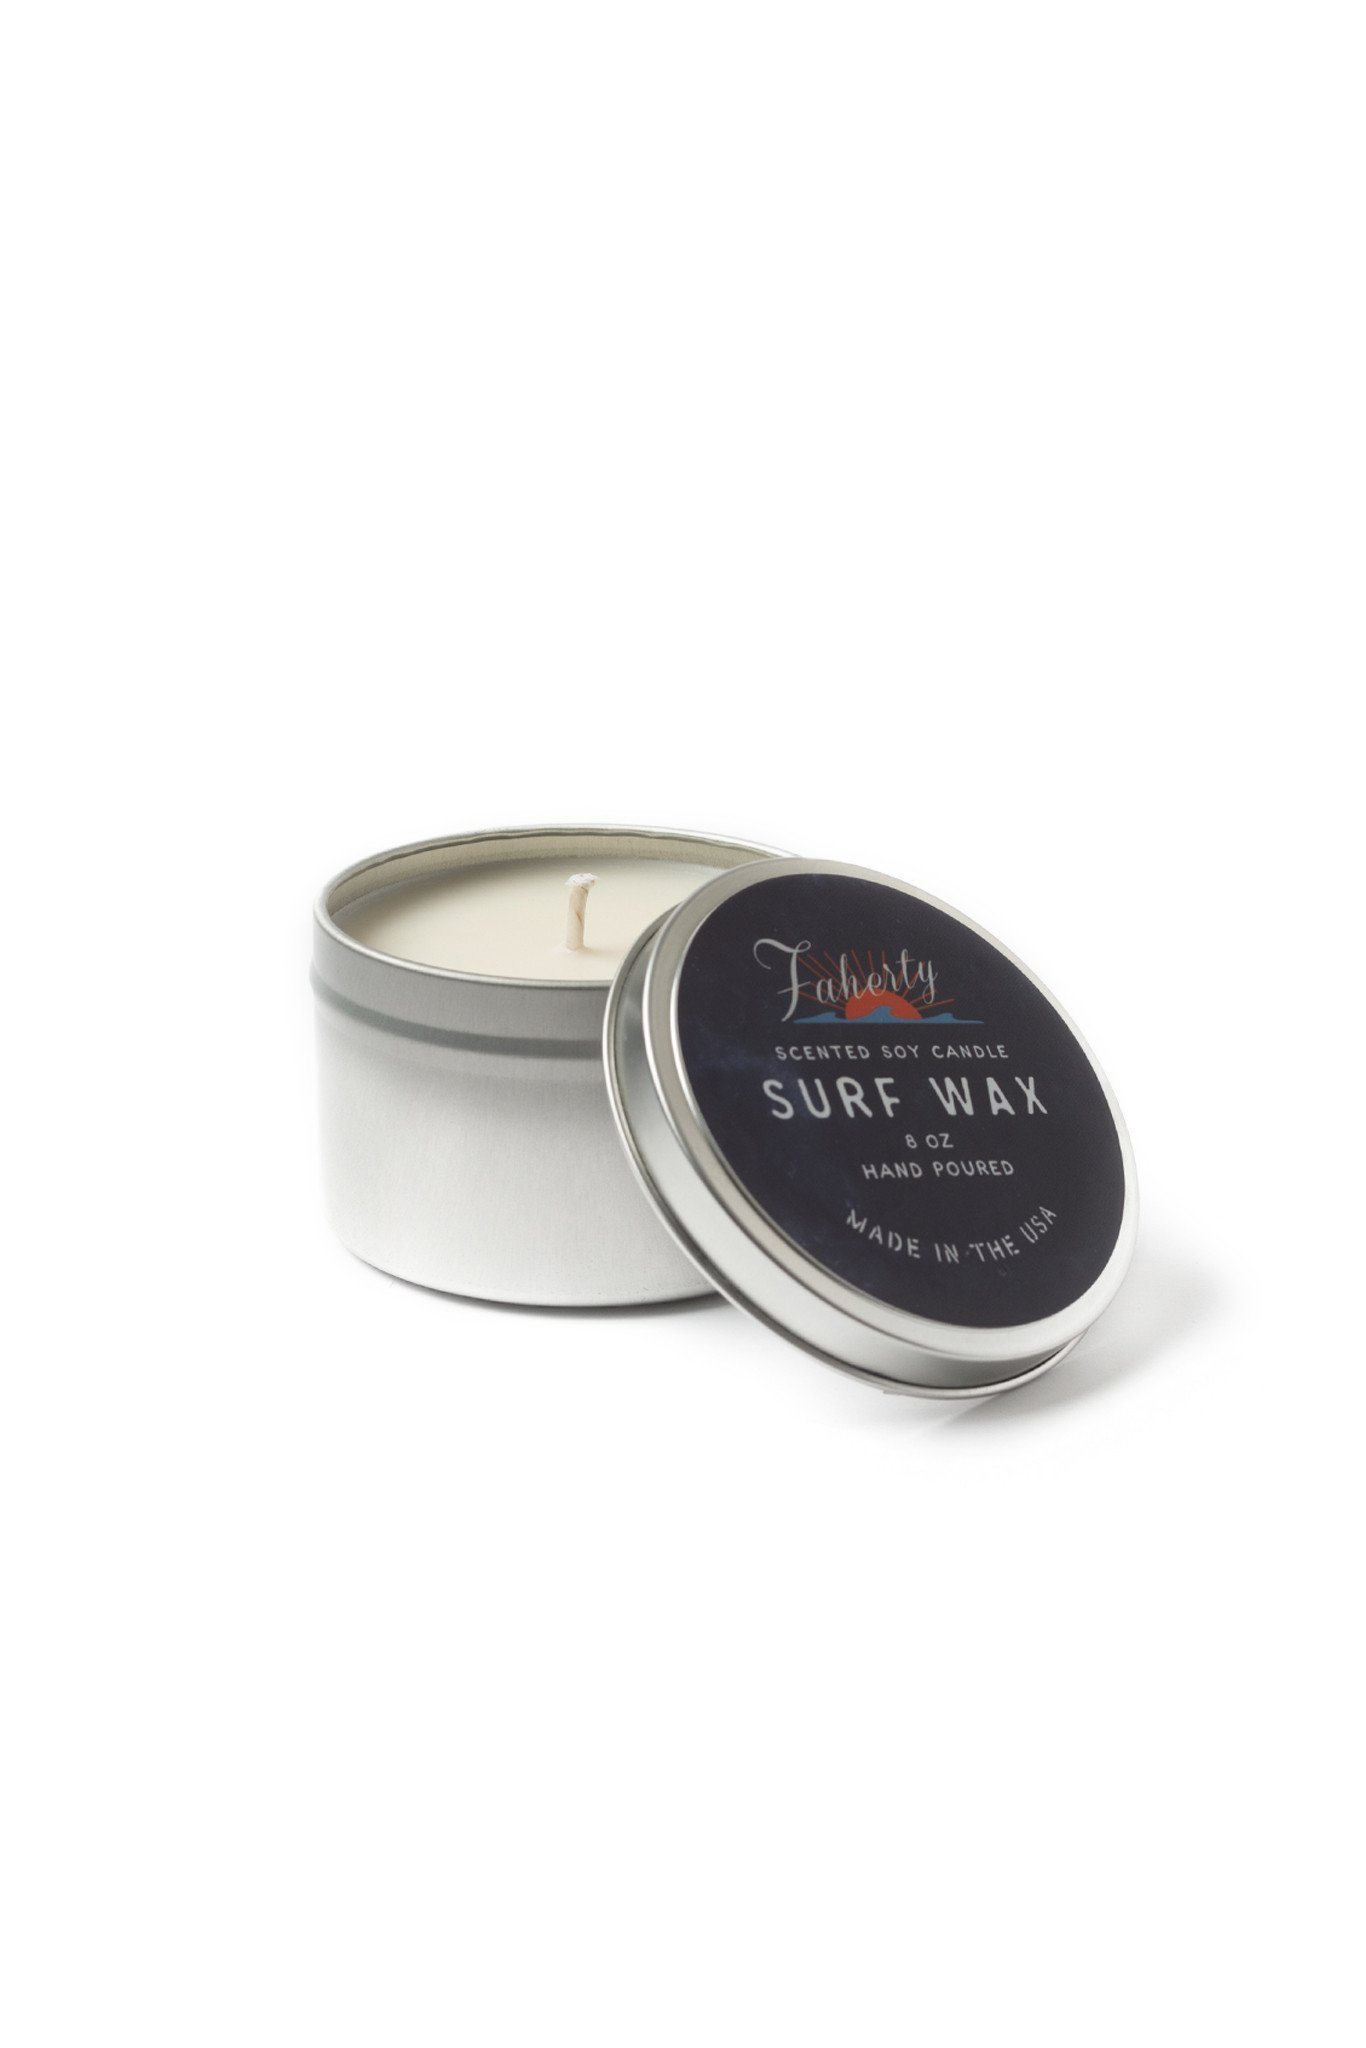 Surf Wax Faherty Soy Candle by atlantic avenew